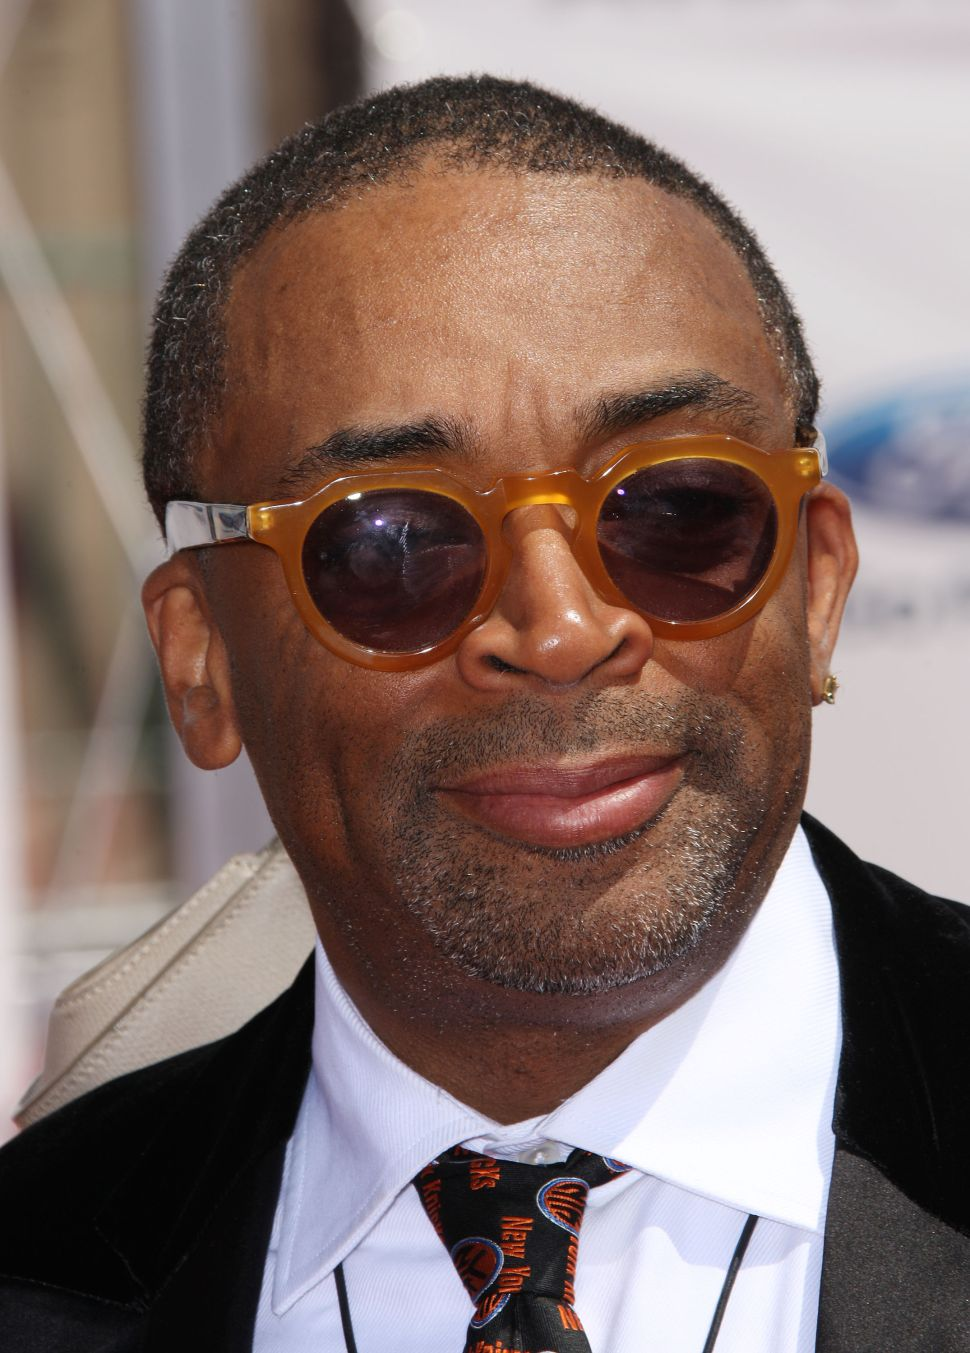 Spike Lee on Mayor Bloomberg's Soda Ban And The Time He Said 'What's Up' to Mitt Romney